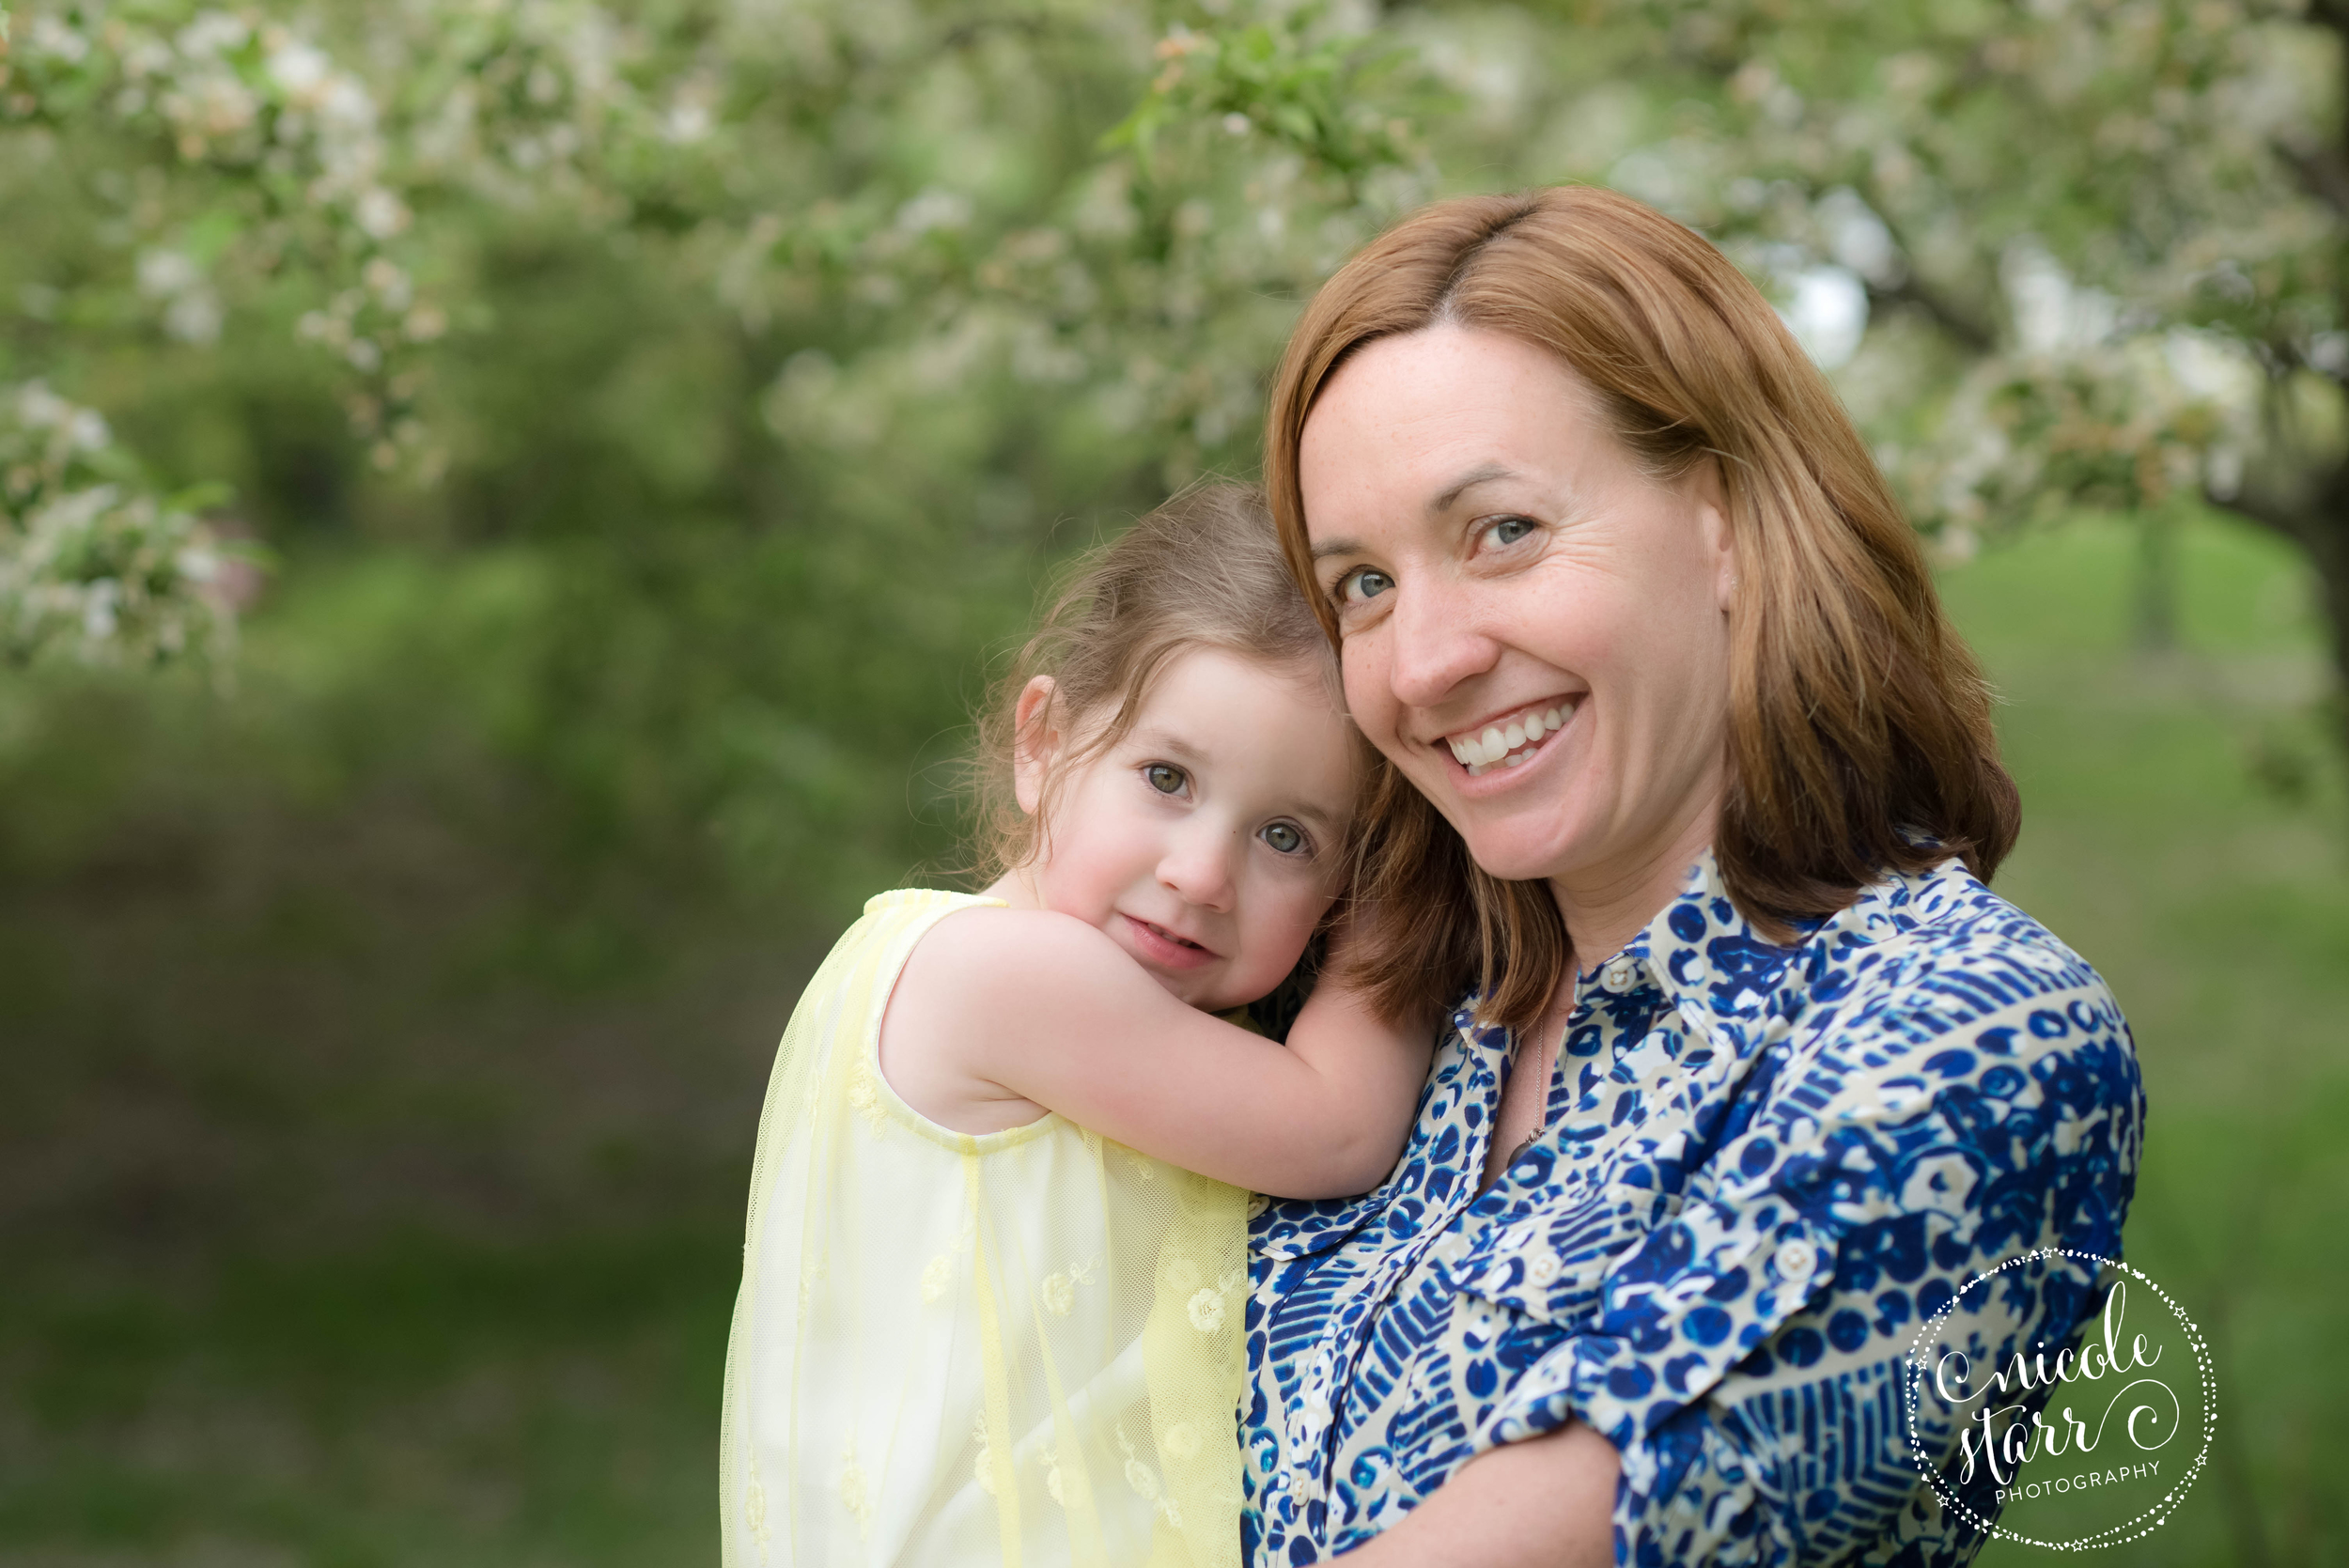 mother and daughter portrait with springtime blossoming tree